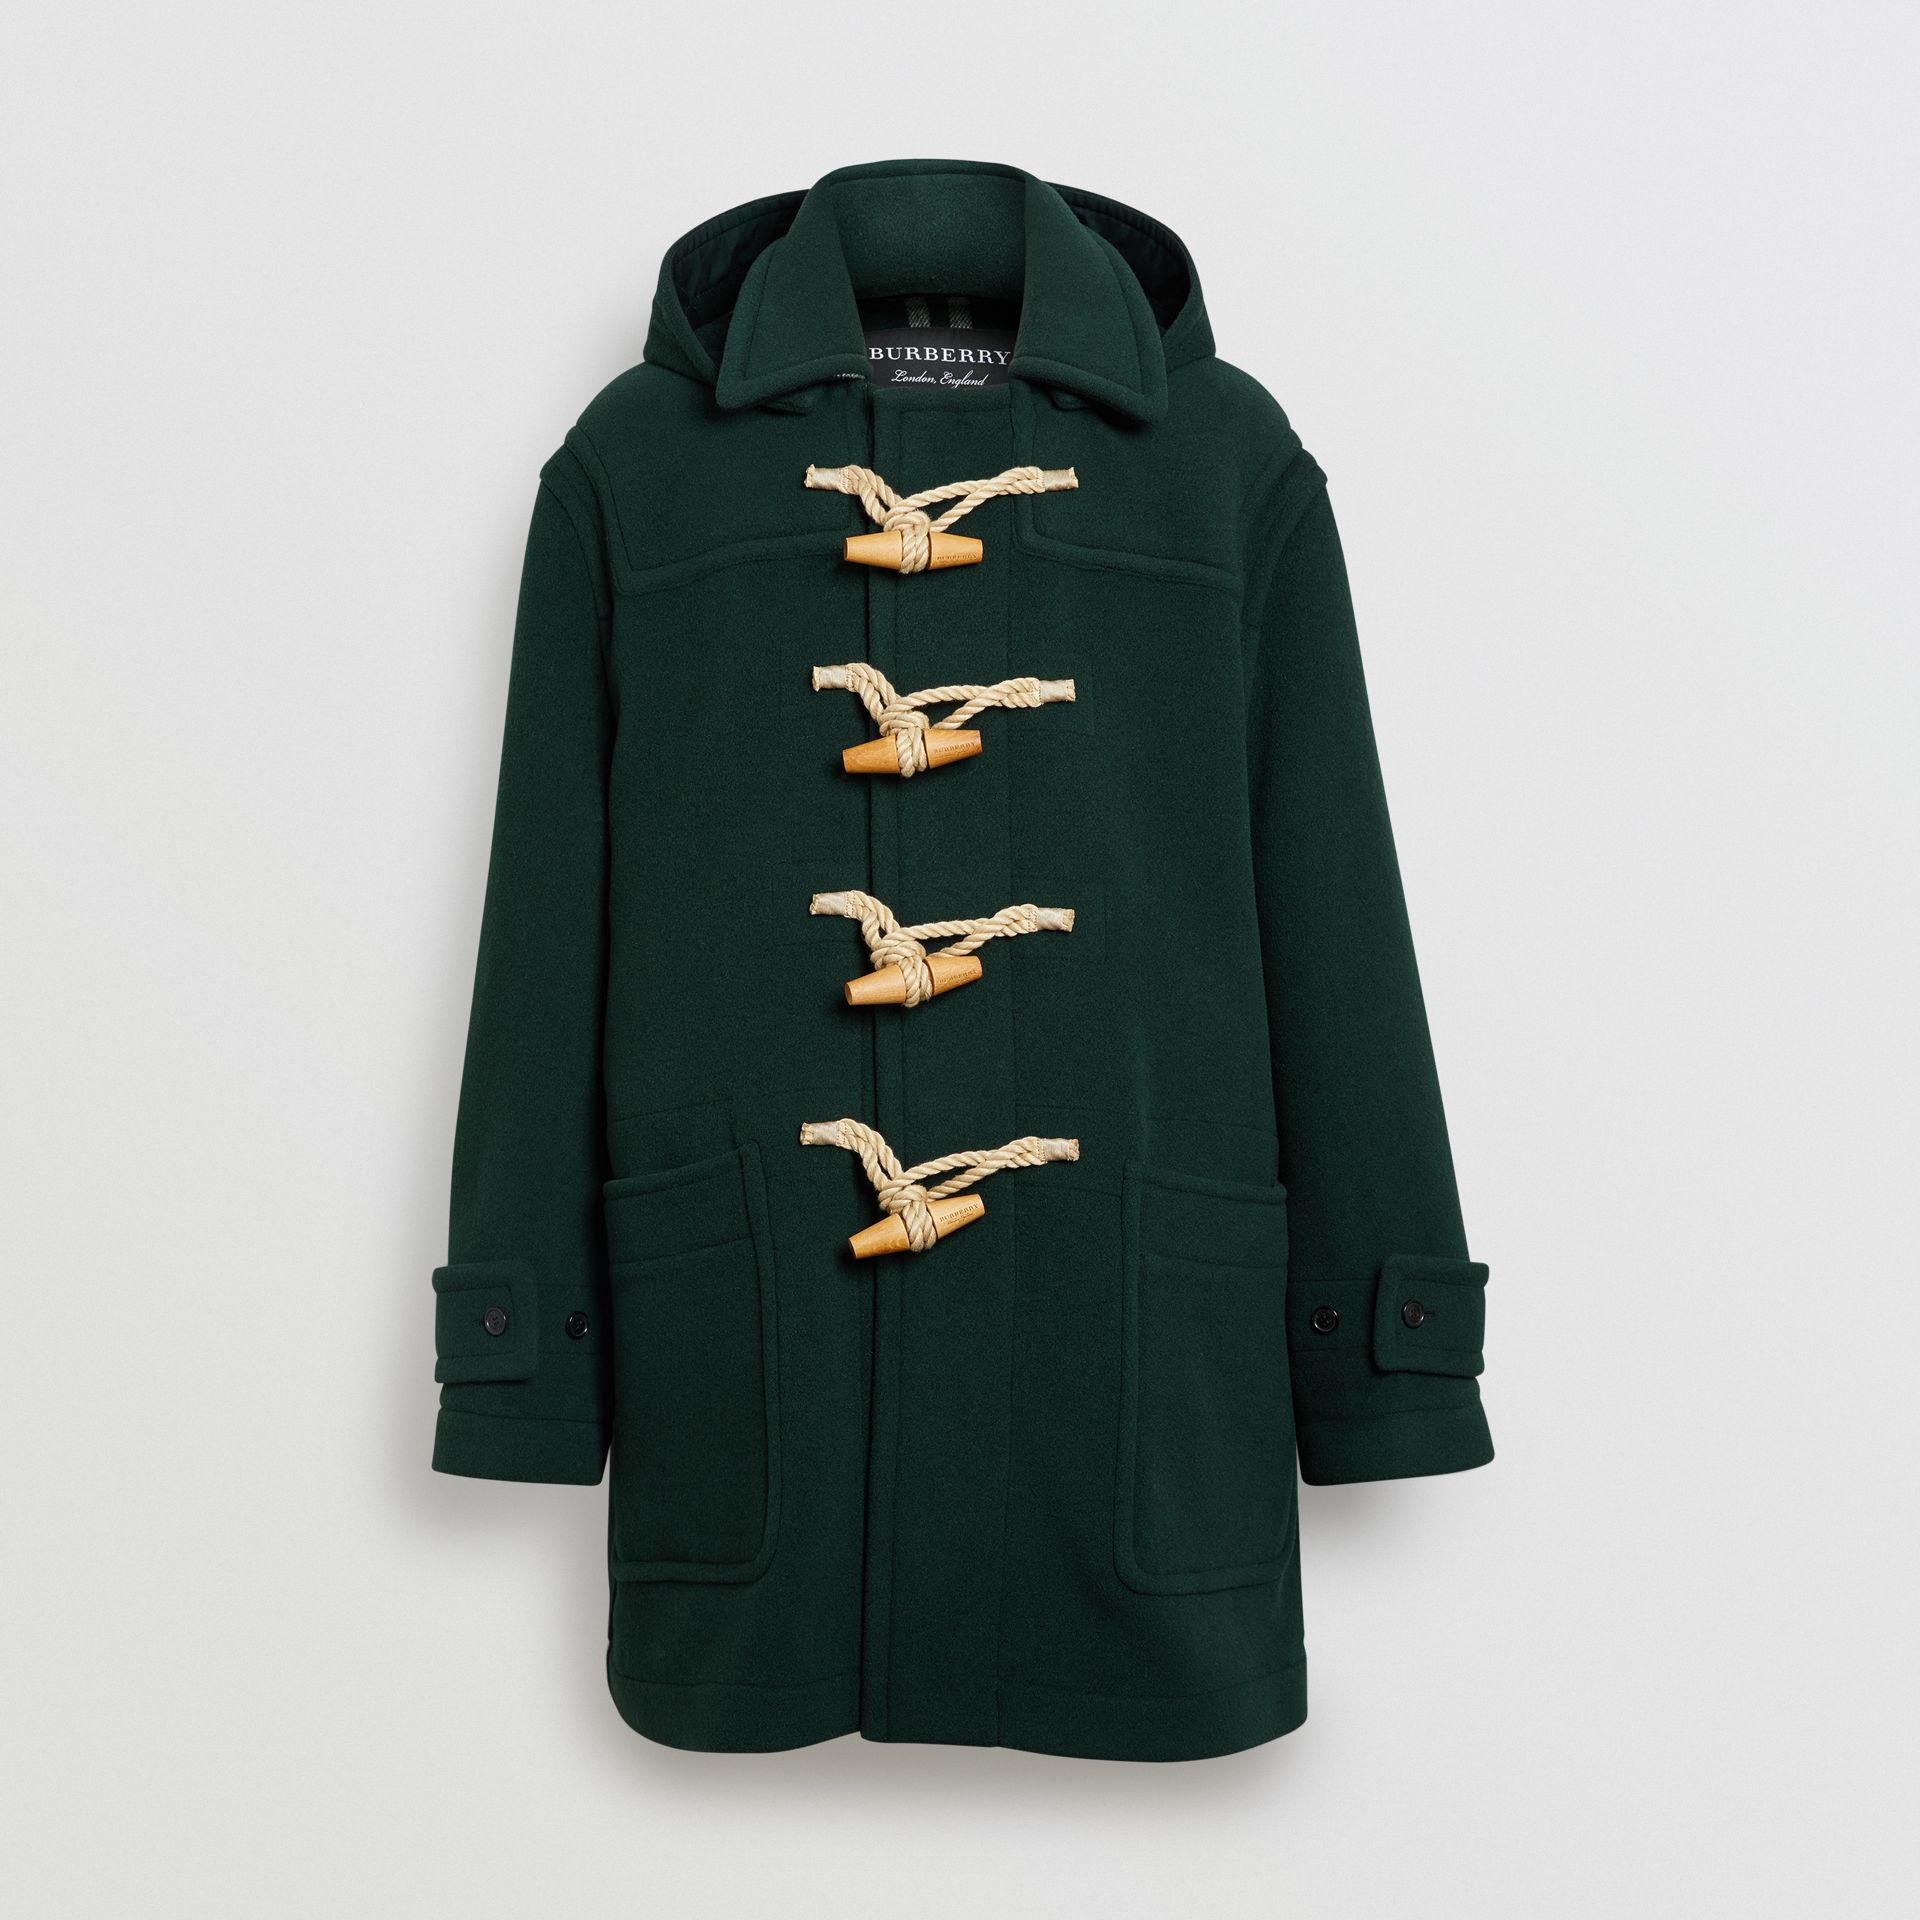 Gosha x Burberry Oversized Duffle Coat in Dark Forest Green | Burberry United Kingdom - gallery image 3